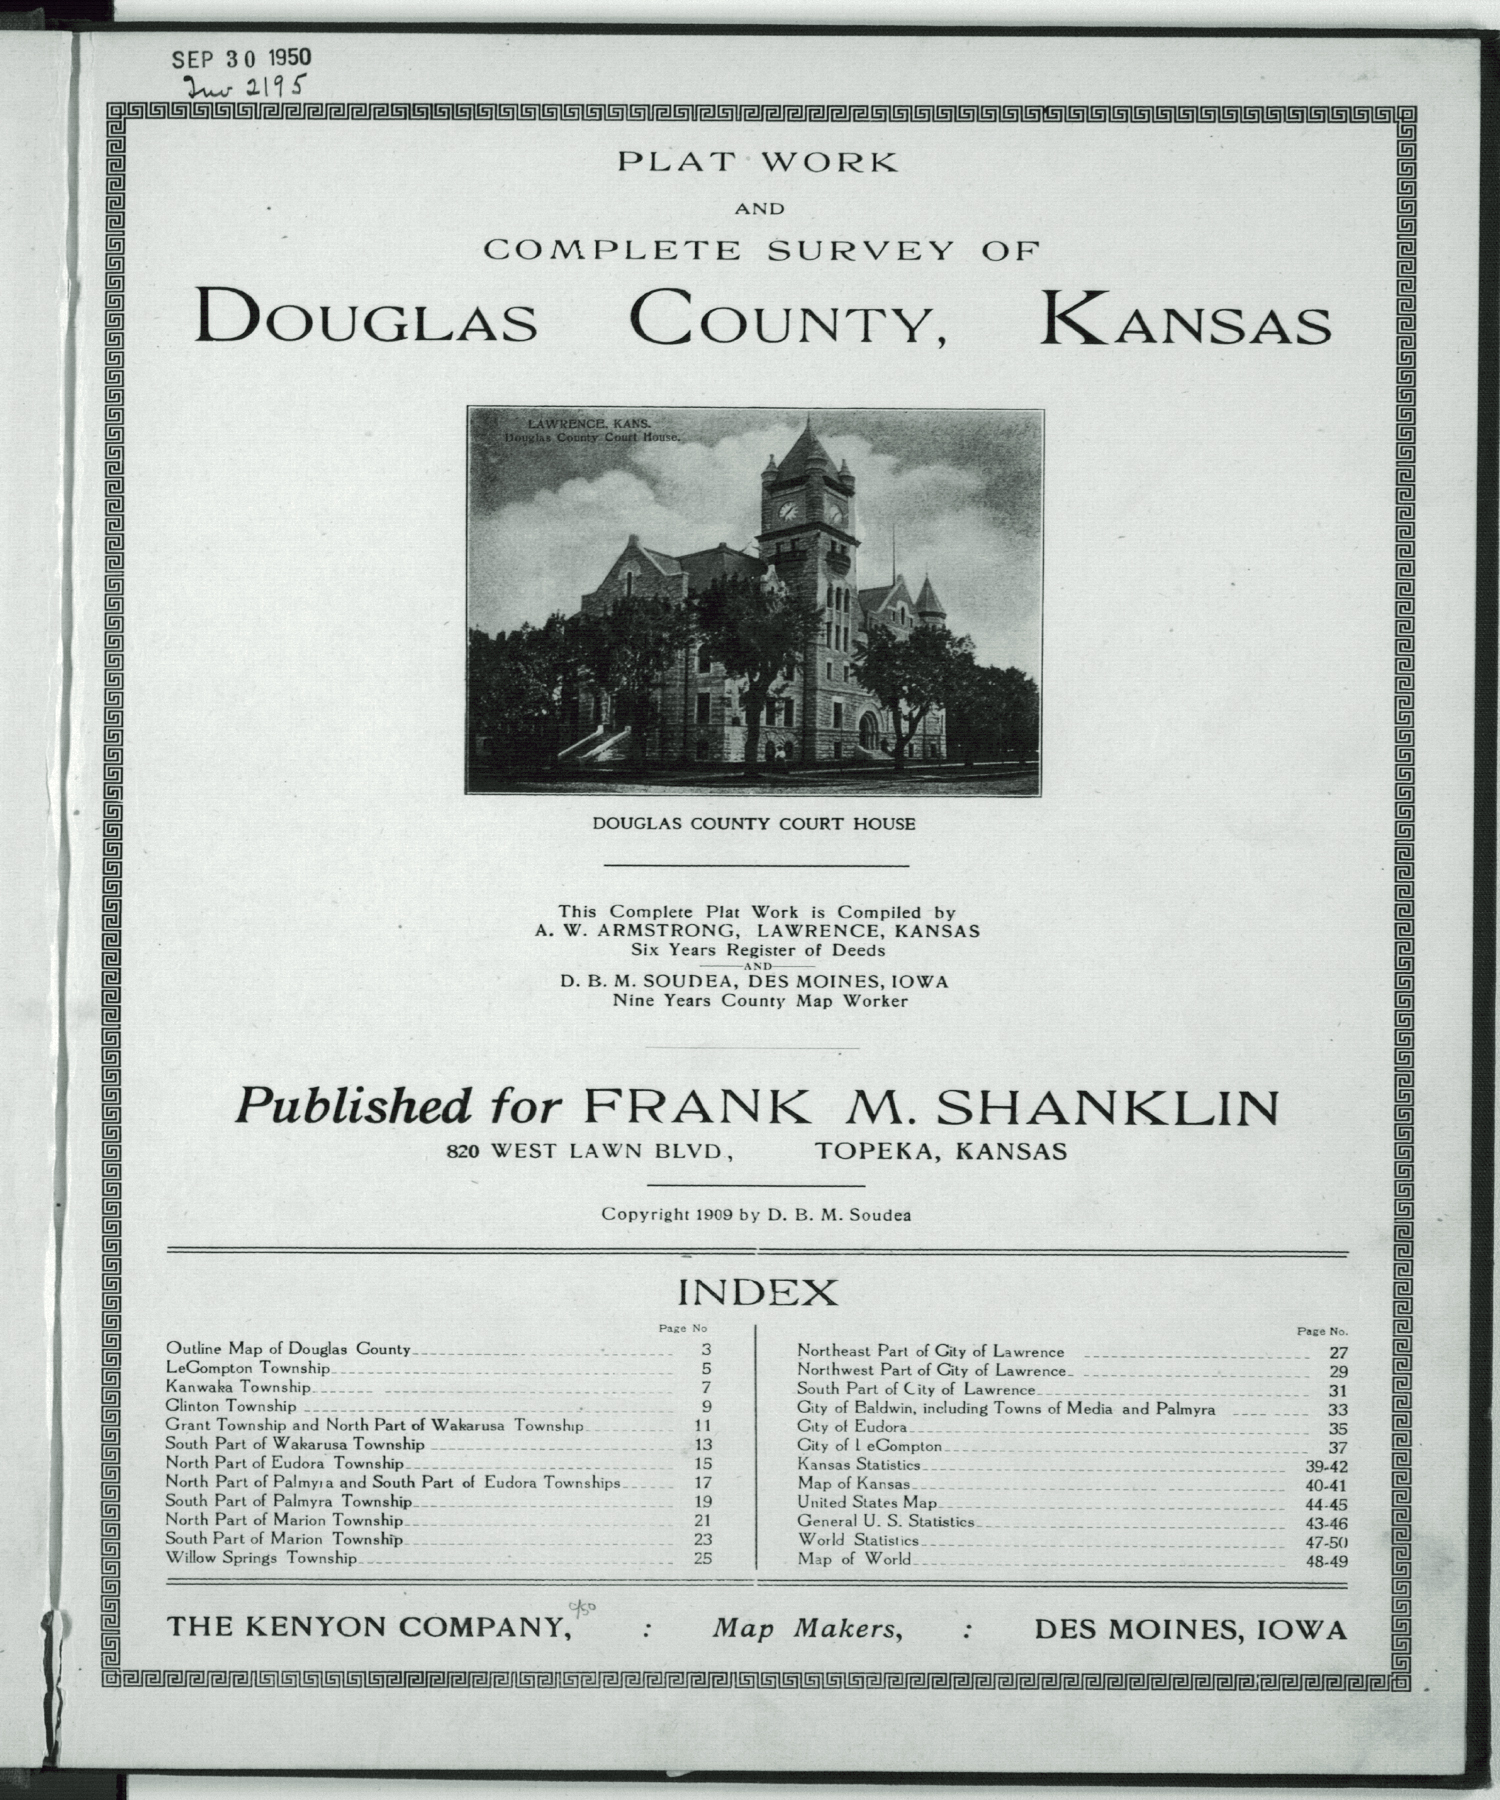 Plat book and complete survey of Douglas County, Kansas - Title Page